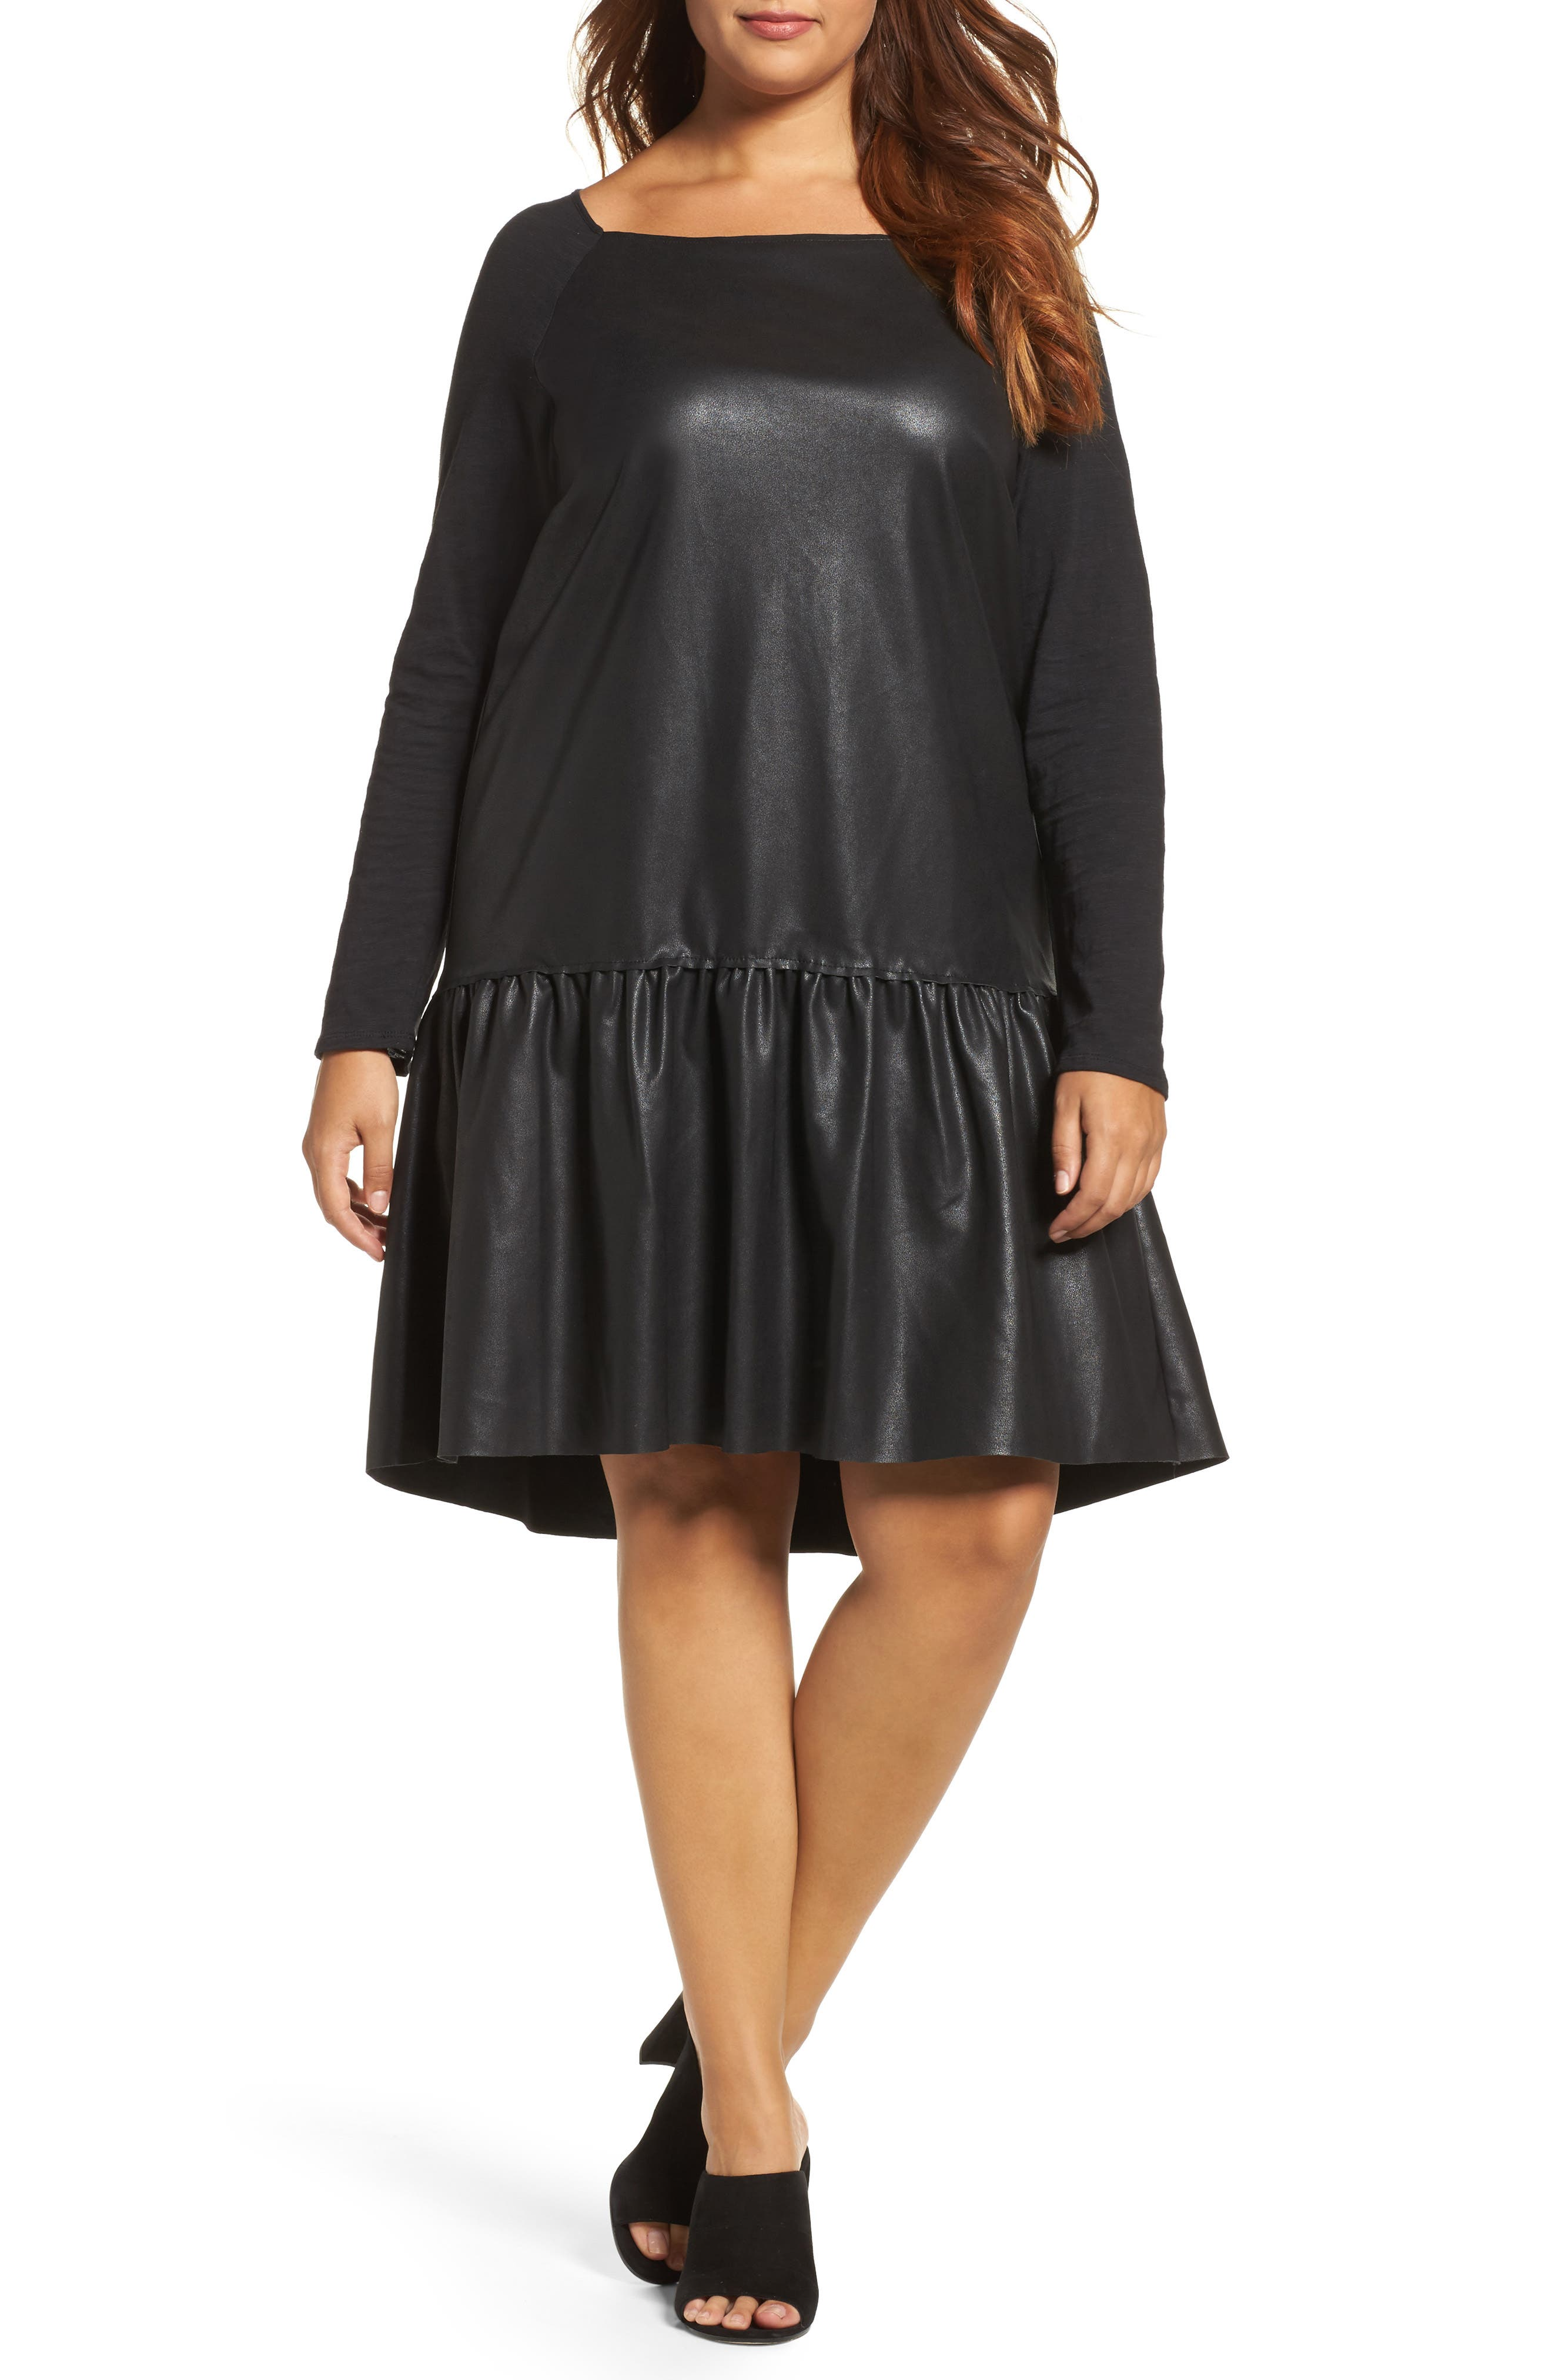 Alternate Image 1 Selected - ELVI Drop Waist Faux Leather & Knit Dress (Plus Size)